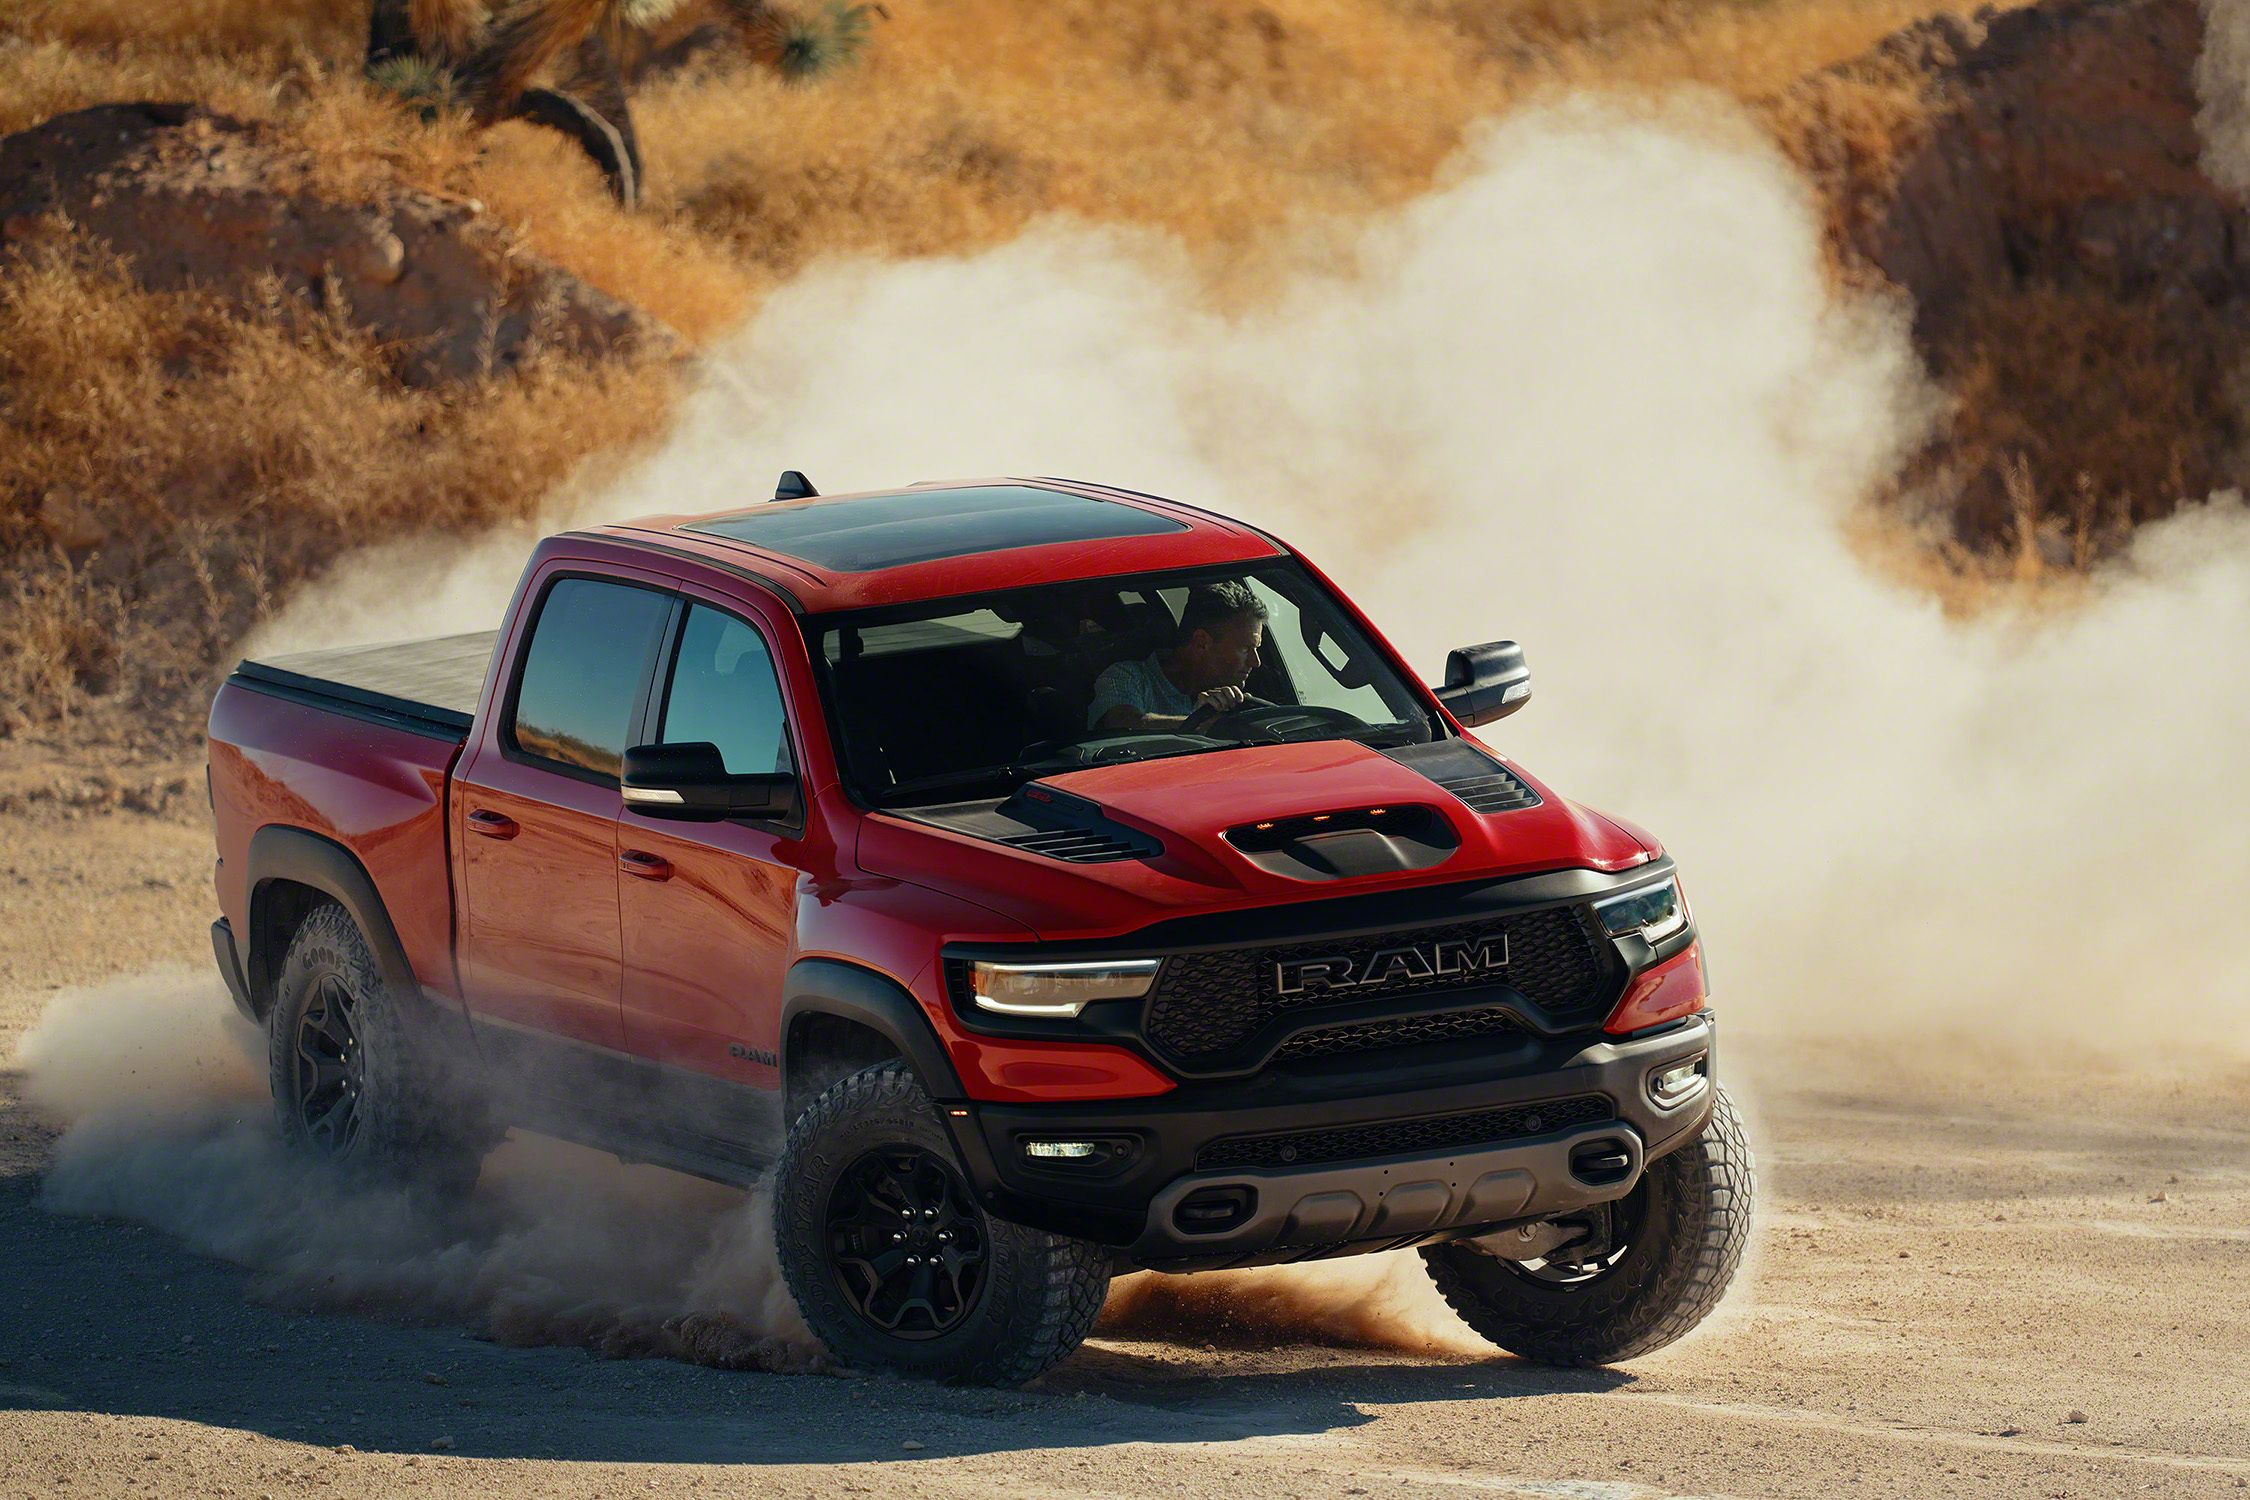 2021 Ram 1500 Trx Is Here With A 702 Hp Hellcat Engine Photos